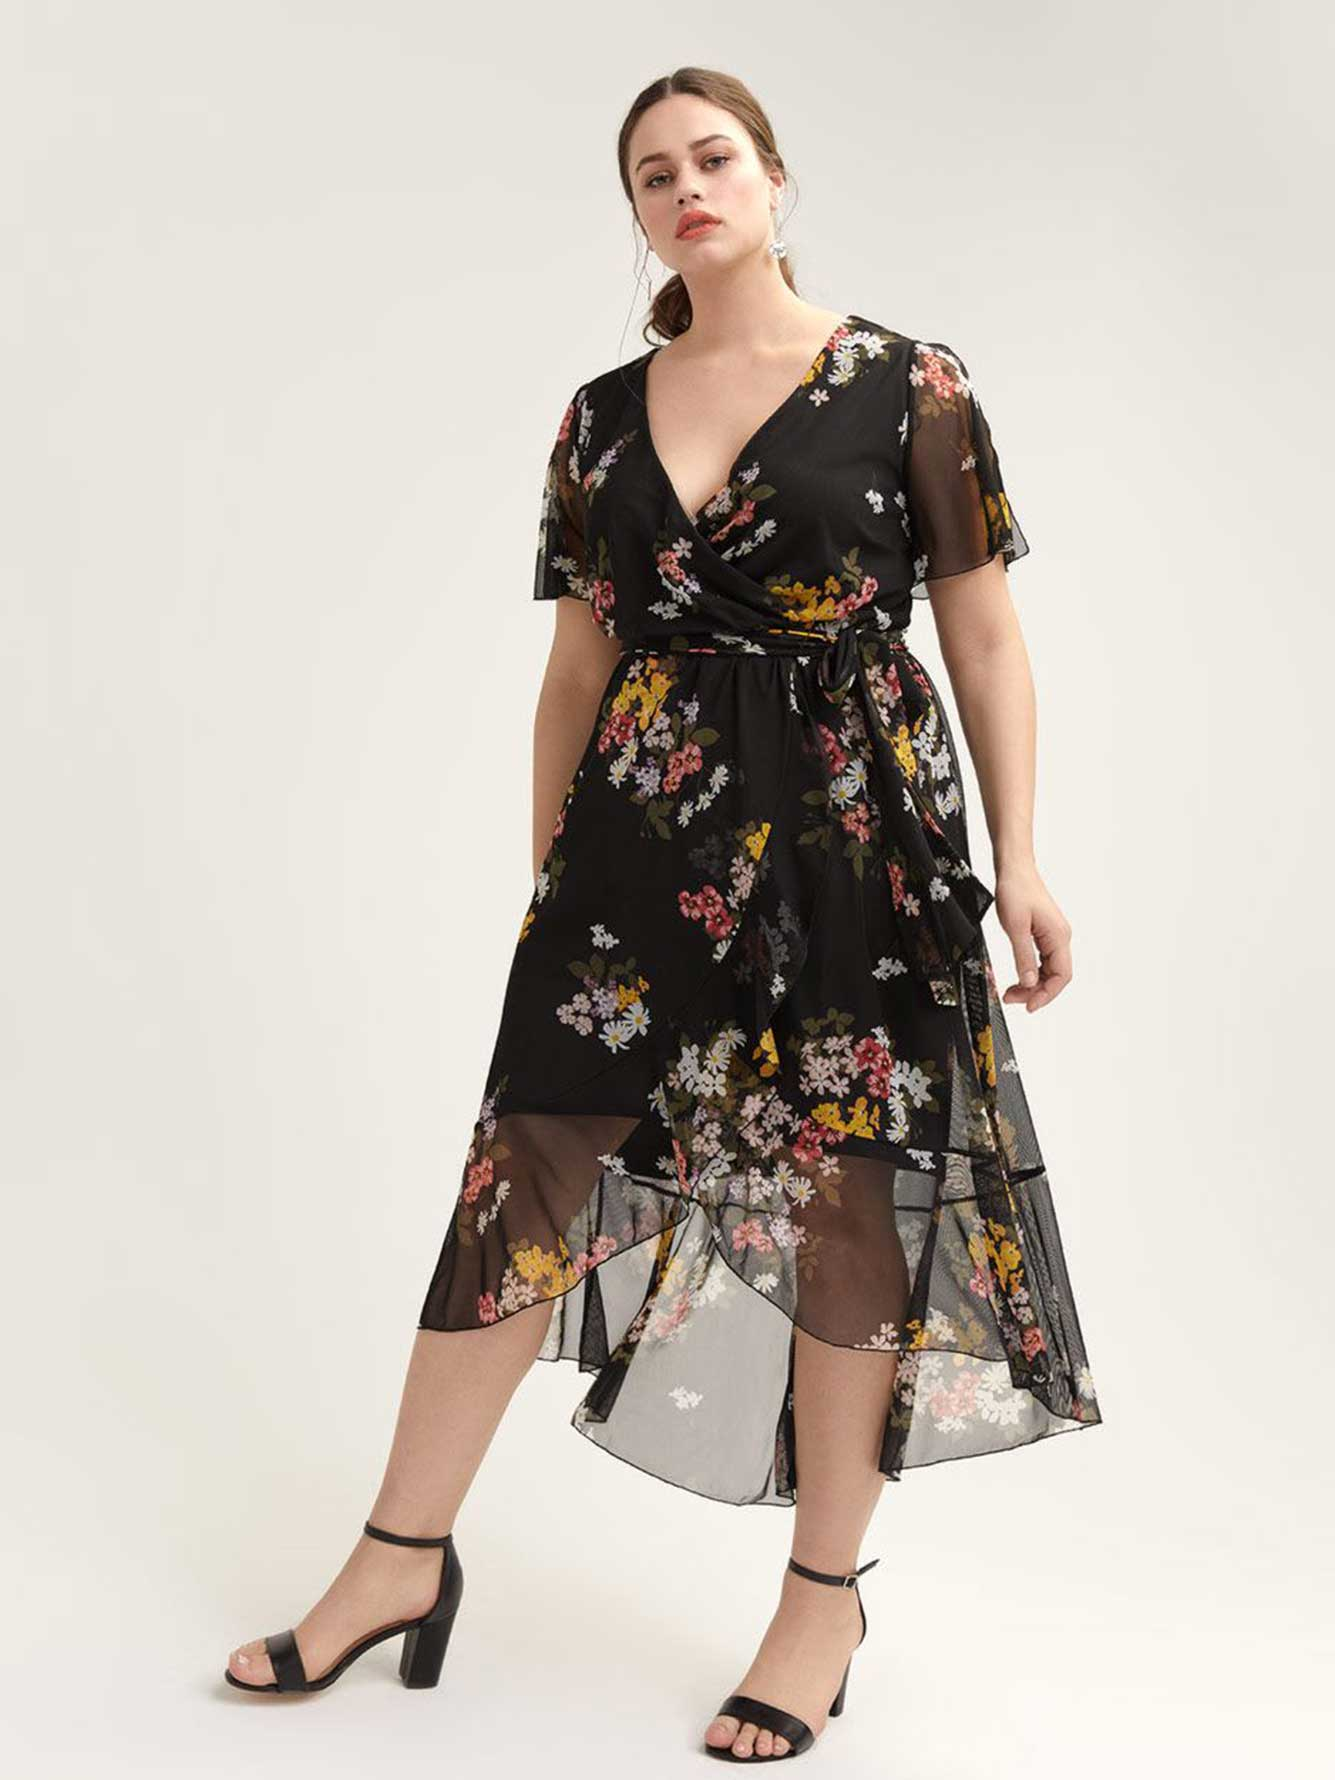 988fe1e62692 High-Low Mesh Floral Dress with Flutter Sleeves | Penningtons